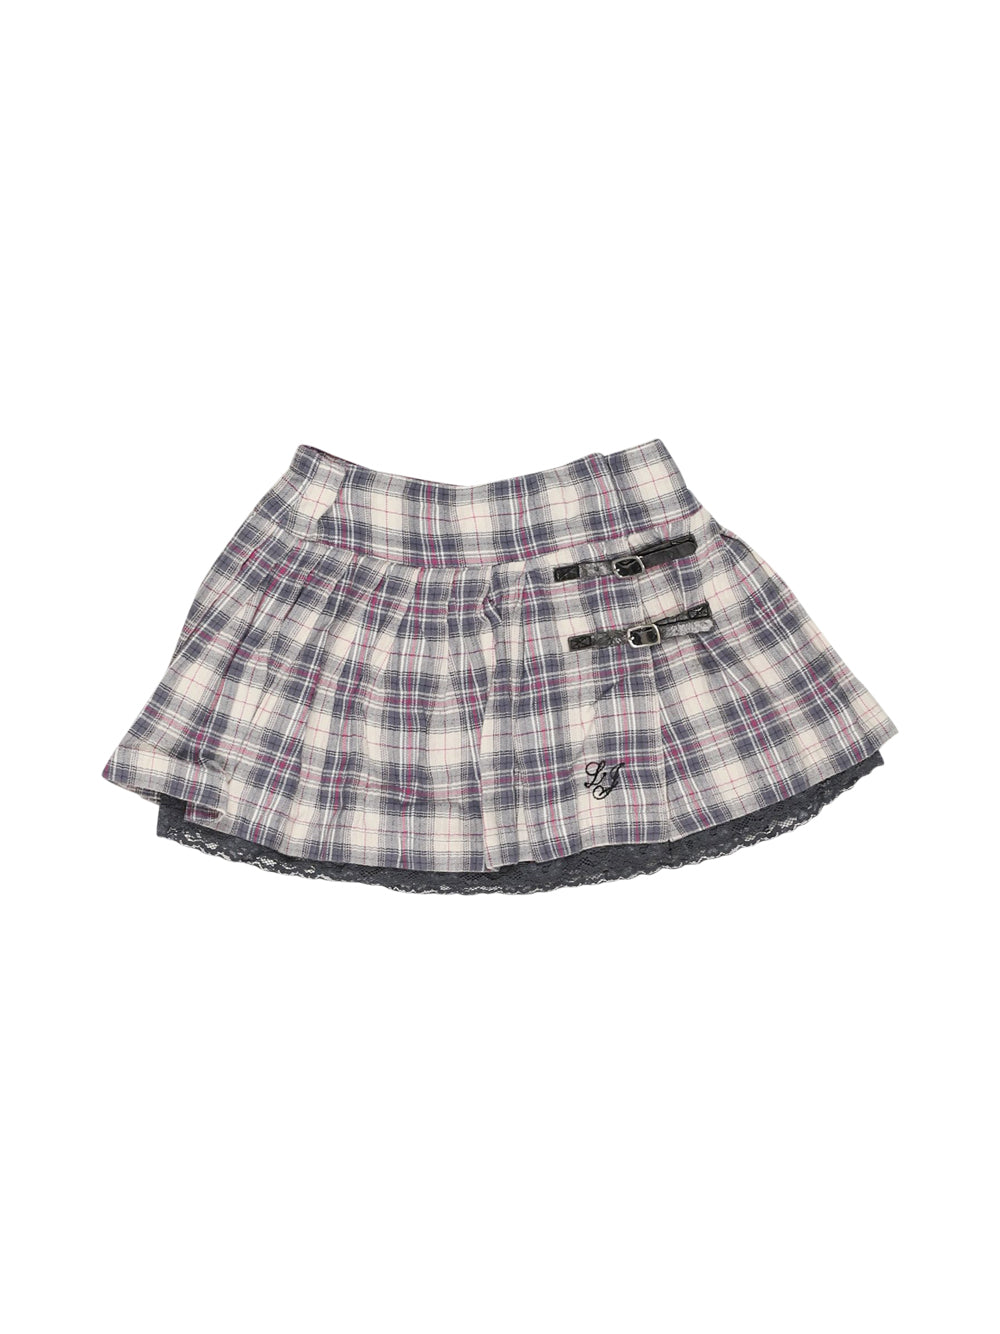 Front photo of Preloved Liu Jo Grey Girl's skirt - size 3-4 yrs